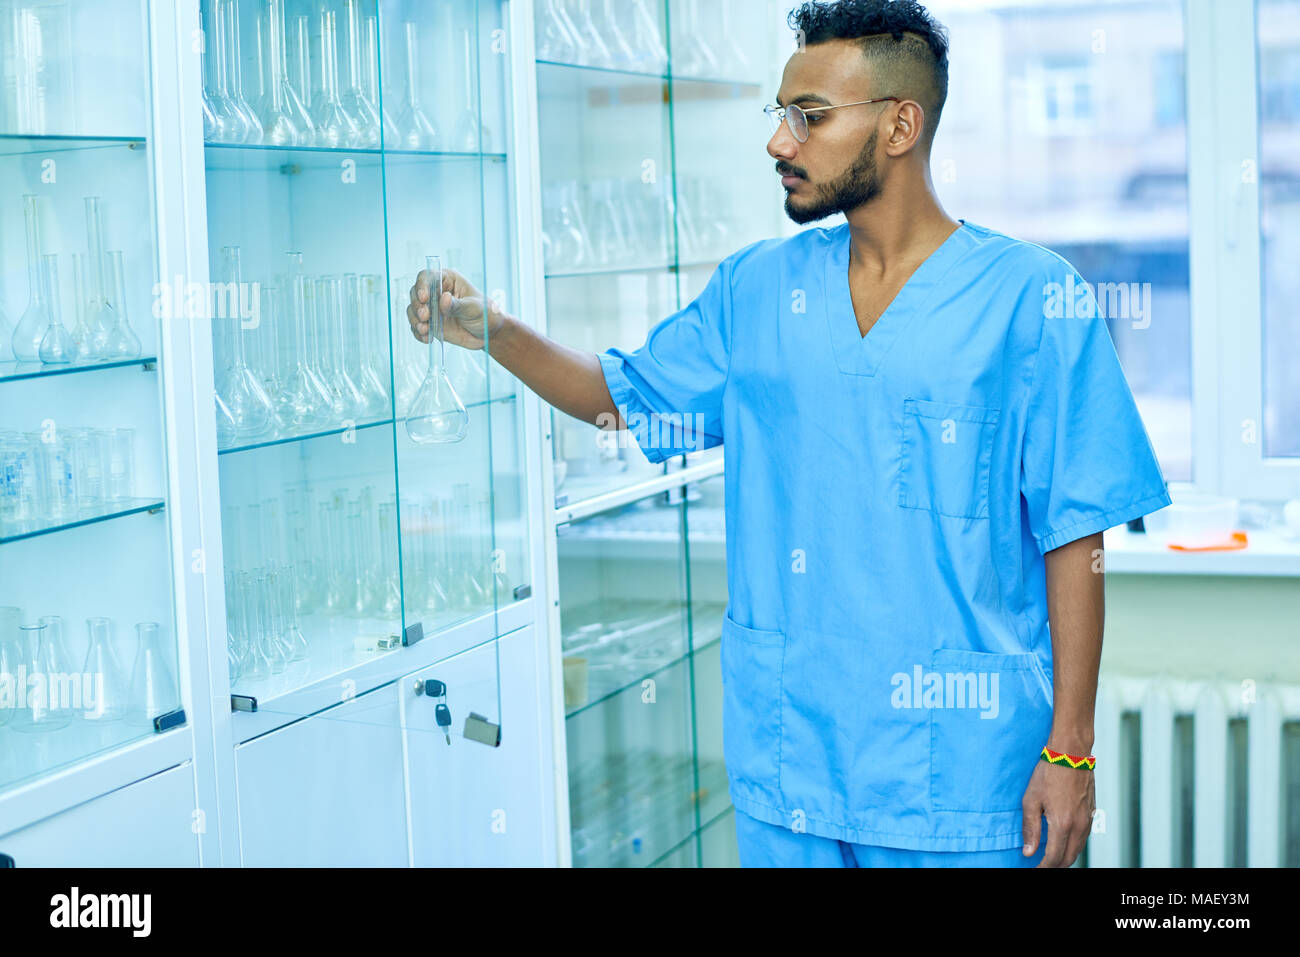 Handsome man working in clean laboratory - Stock Image